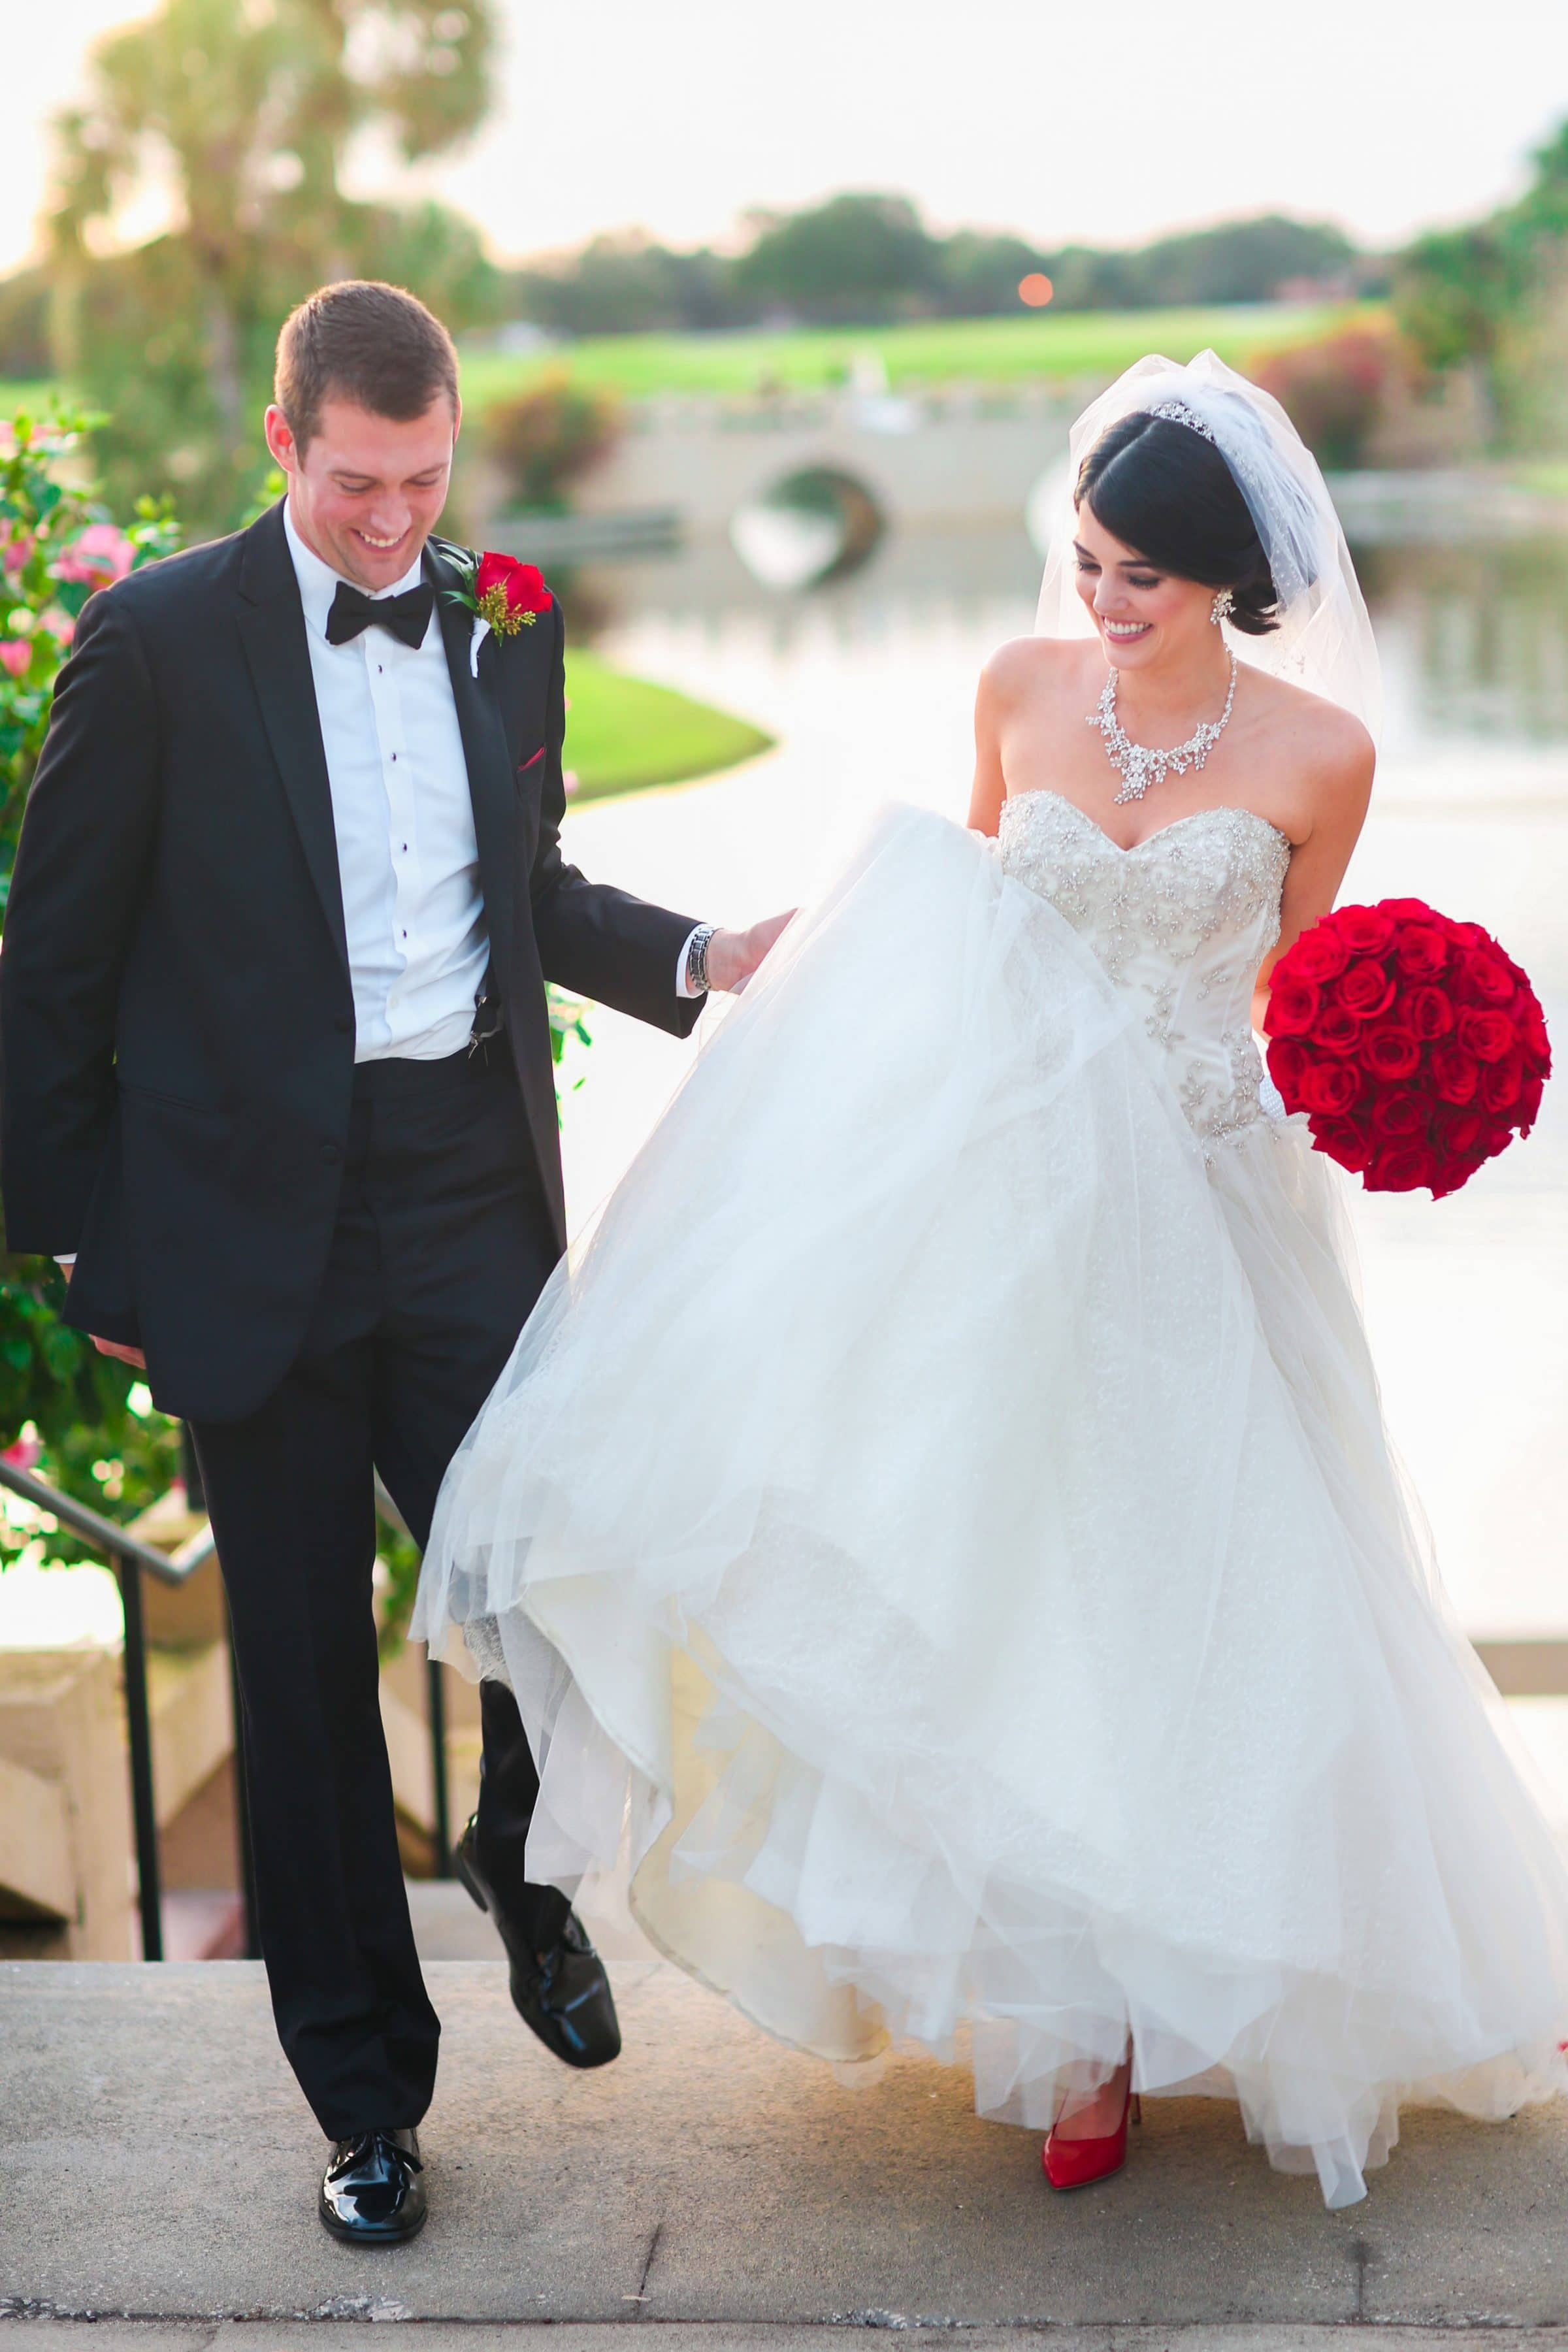 smiling bride and groom at top of outdoor staircase